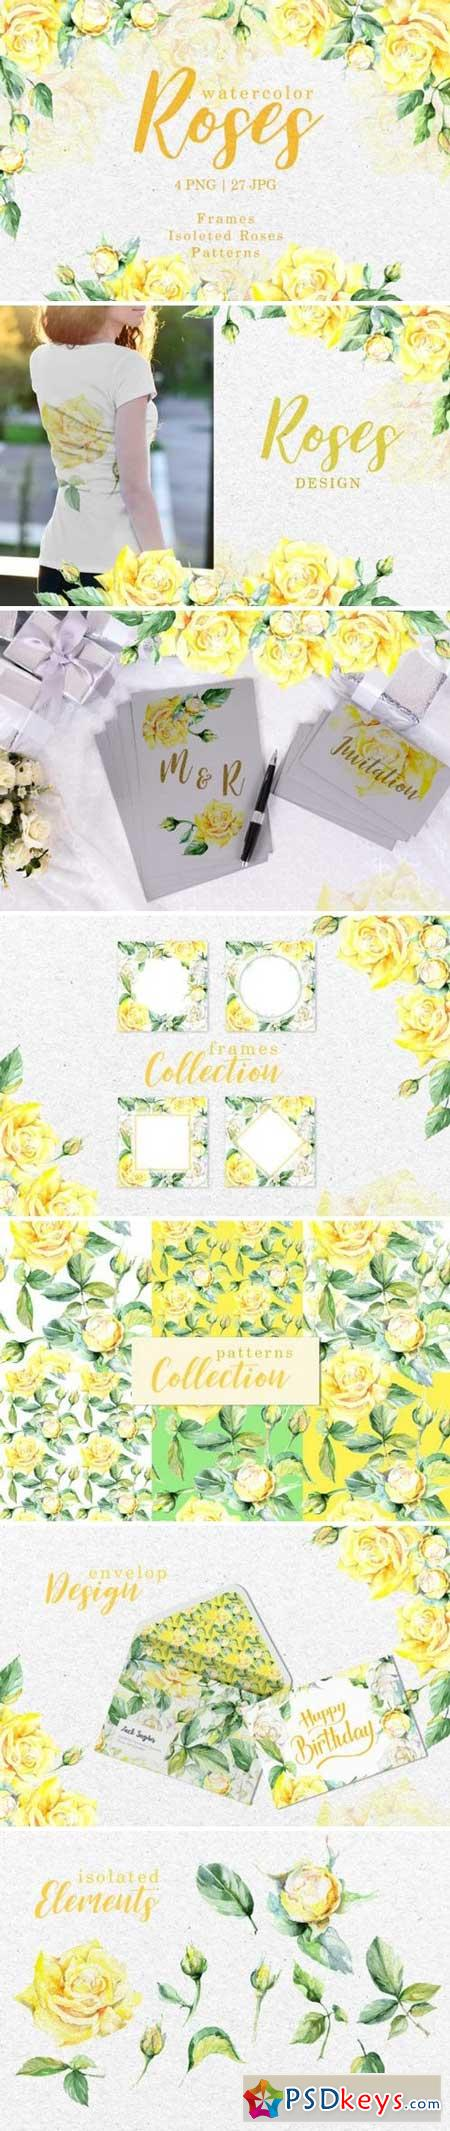 Roses Bright yellow Watercolor png 3319188